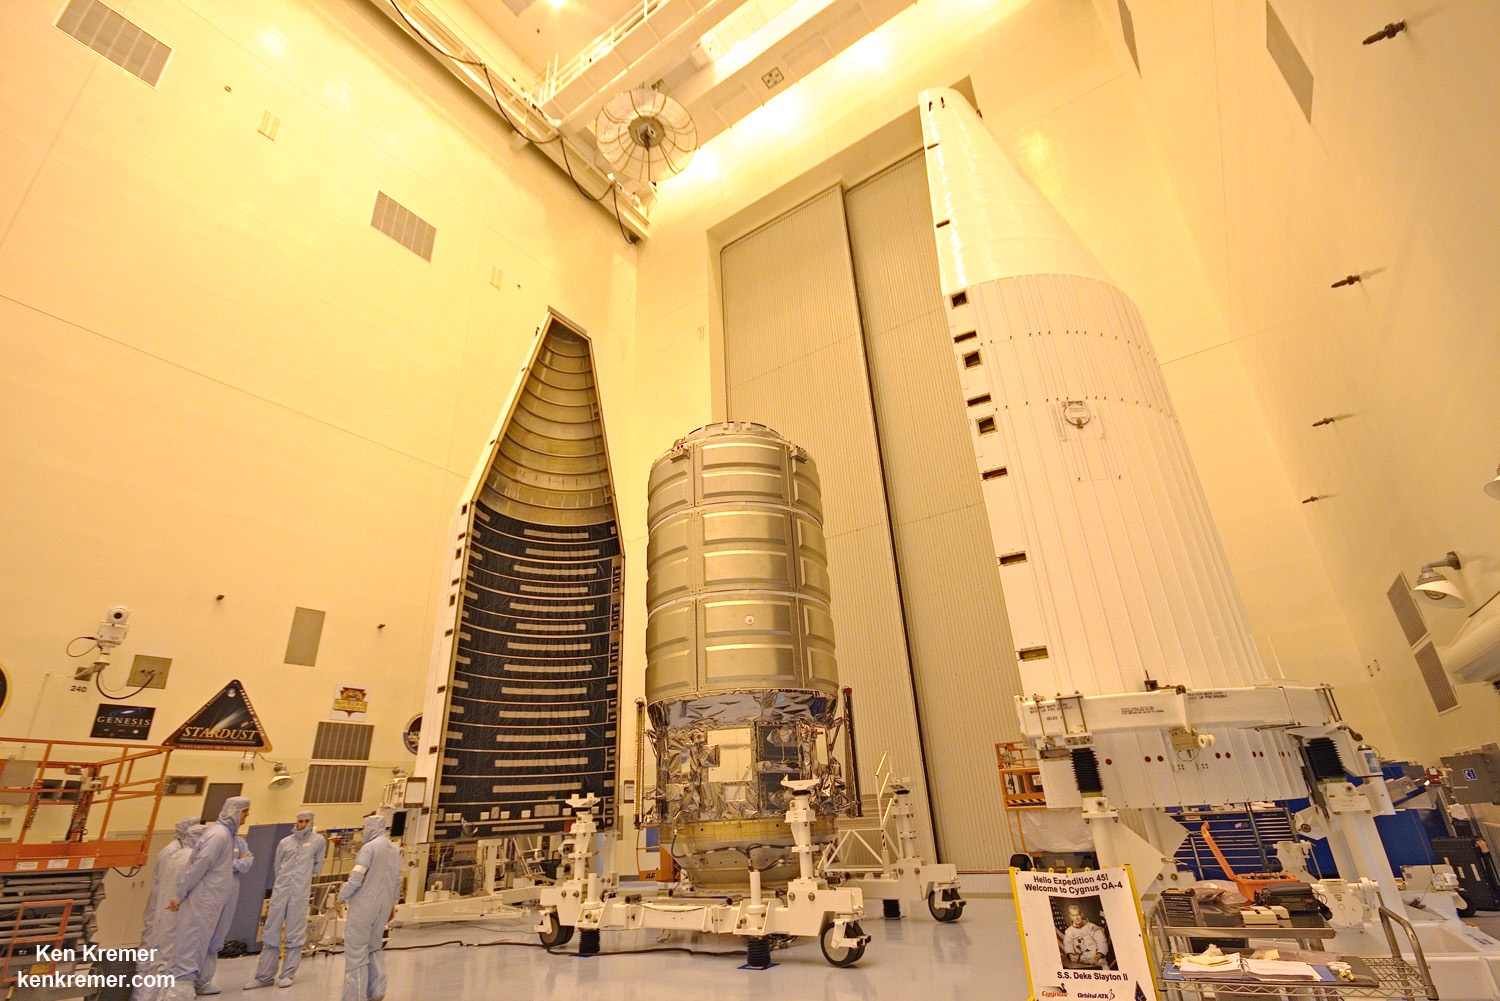 First enhanced Orbital ATK Cygnus commercial cargo ship is fully assembled and being processed for blastoff  to the ISS on Dec. 3, 2015 on an ULA Atlas V rocket. This view shows the Cygnus, named the SS Deke Slayton II, and twin payload enclosure fairings inside the Kennedy Space Center clean room.   Credit: Ken Kremer/kenkremer.com